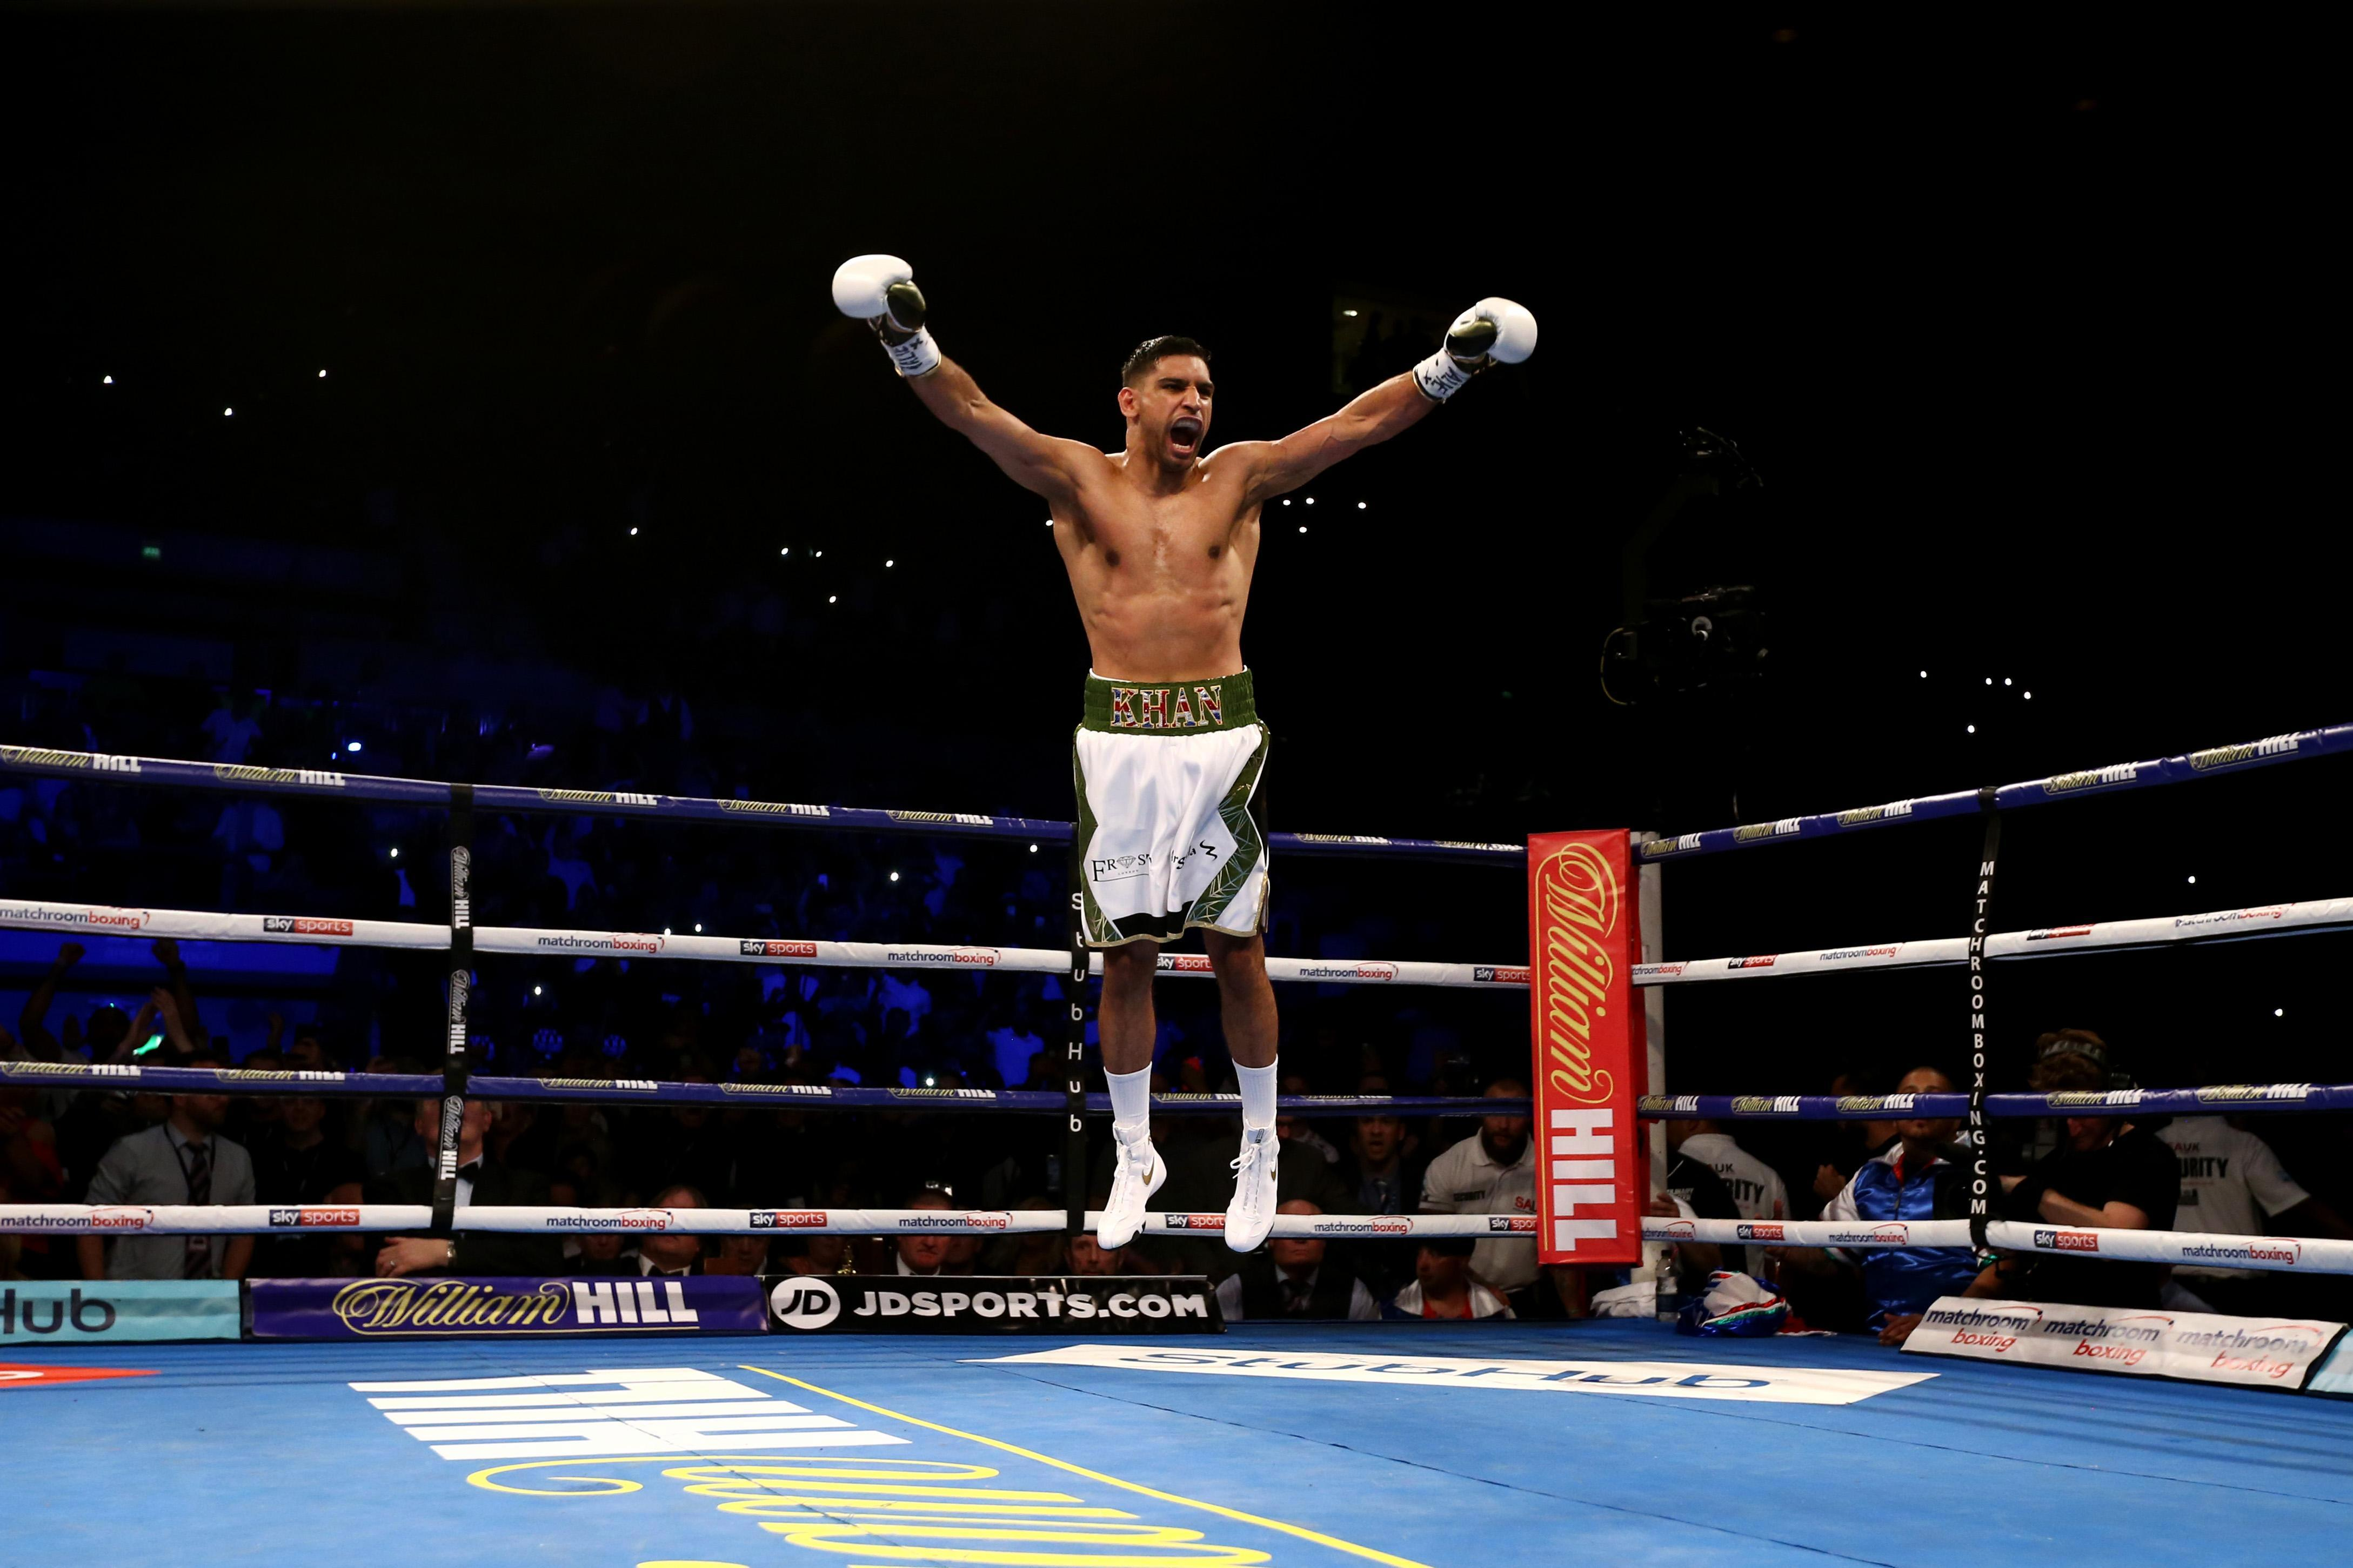 The performance echoed Khan's comeback win over Phil Lo Greco last year